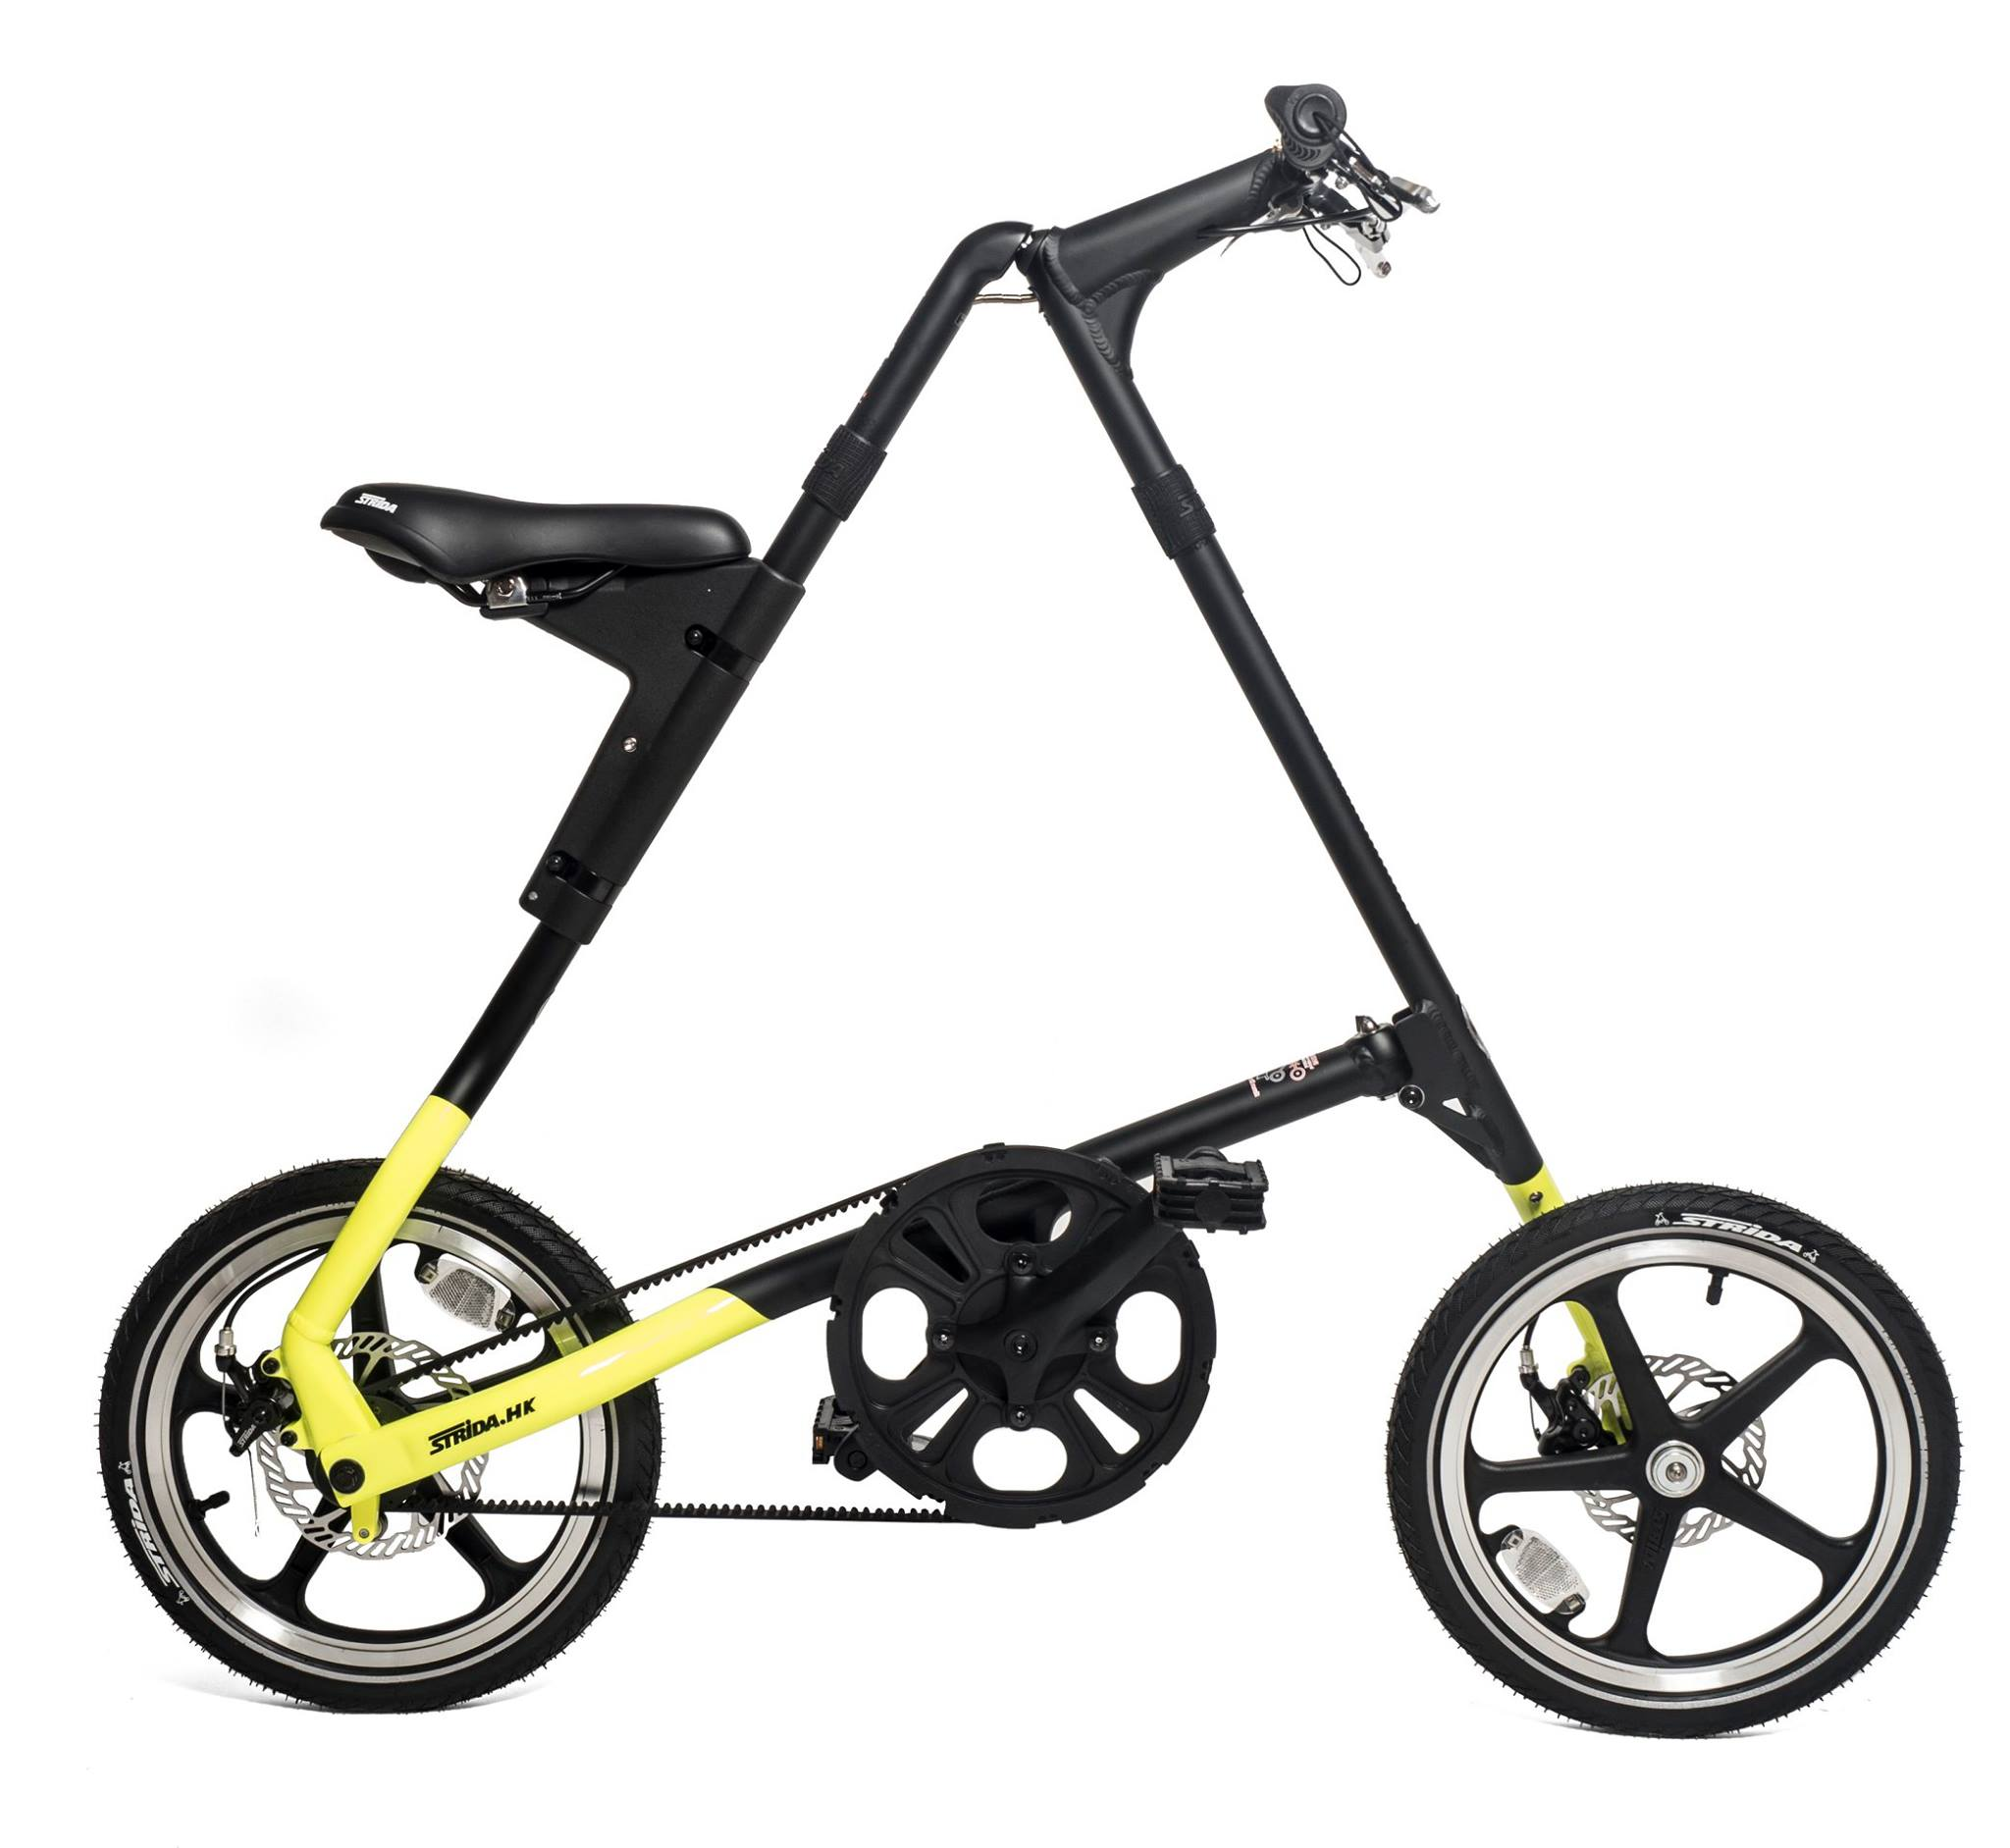 STRiDA LT Matt black x Lumi strida lt STRiDA LT 12640418 931791903581554 1691573777833553380 o